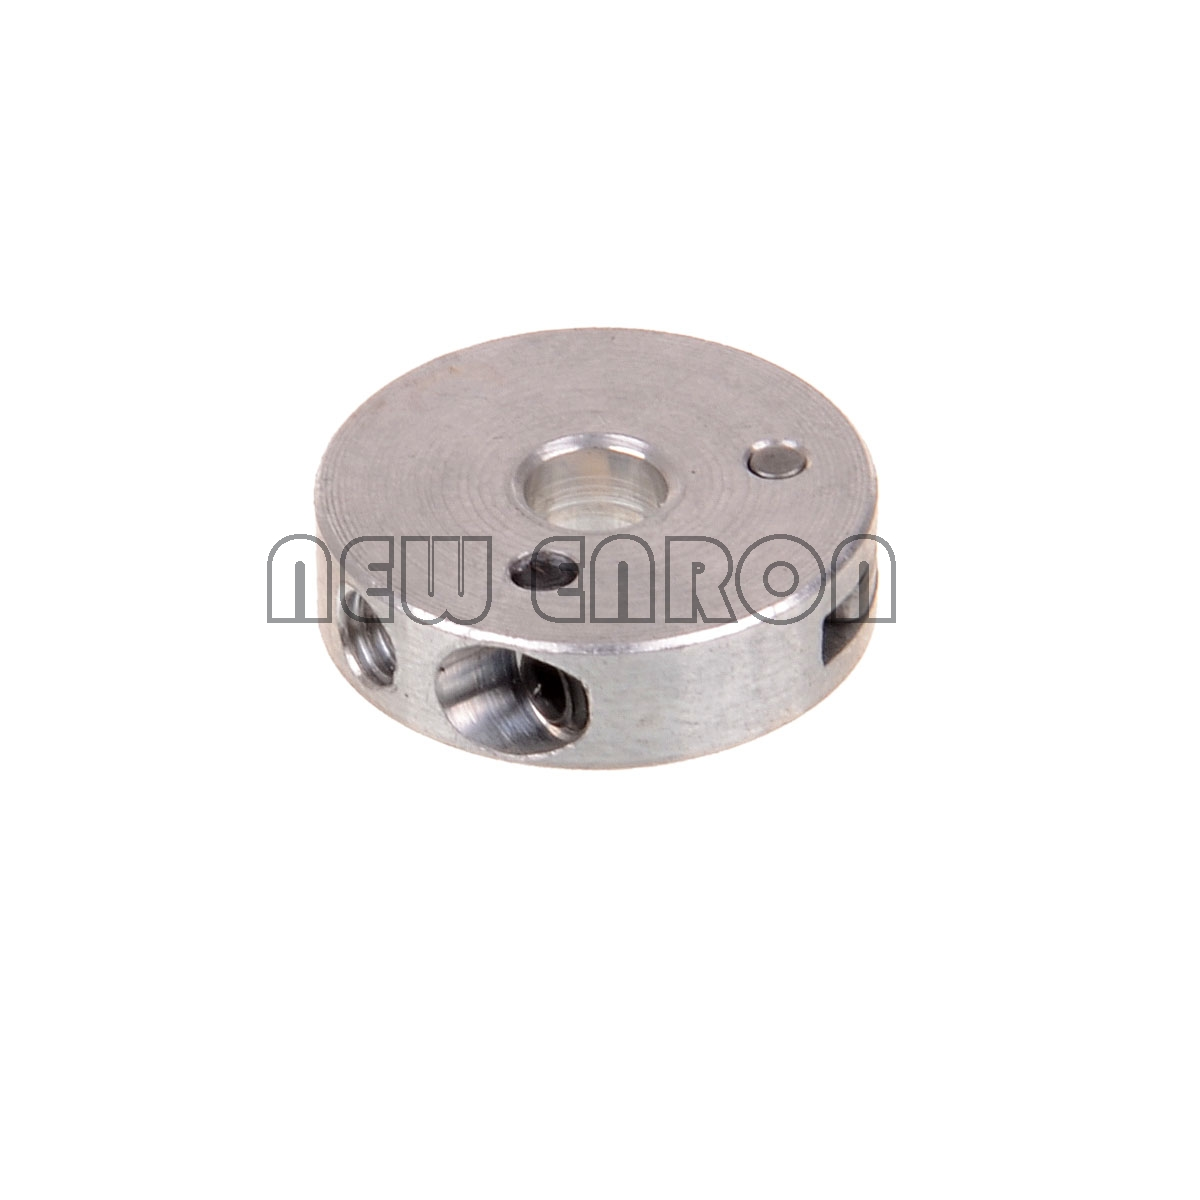 NEW ENRON Two-Way Drive Clutch 02045 HSP Spare Parts For 1/10 R/C Model Car 1:10 RC CAR PARTS 02045